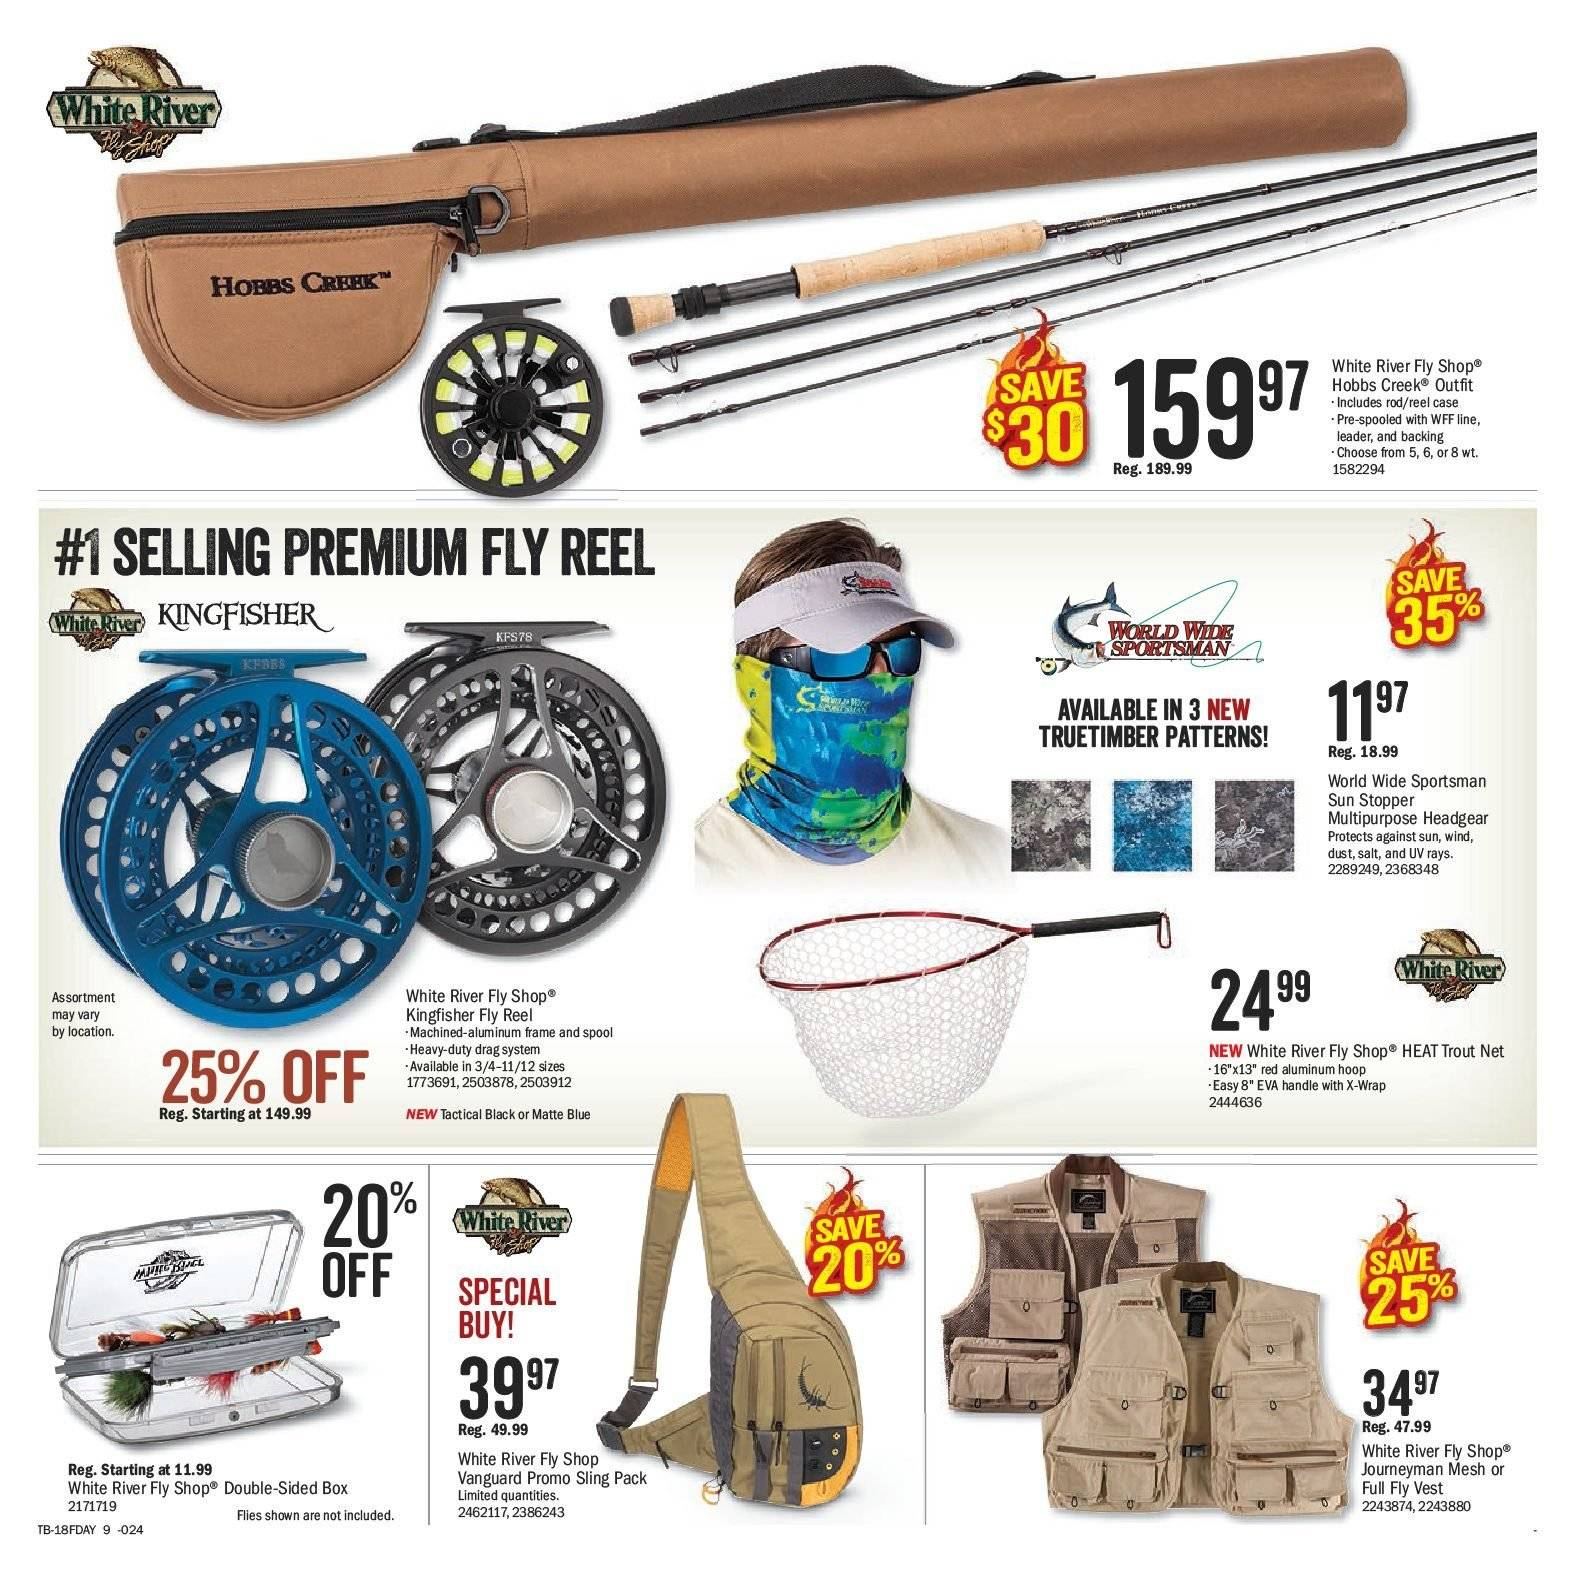 Bass Pro Shops Flyer  - May 29, 2018 - June 17, 2018. Page 9.